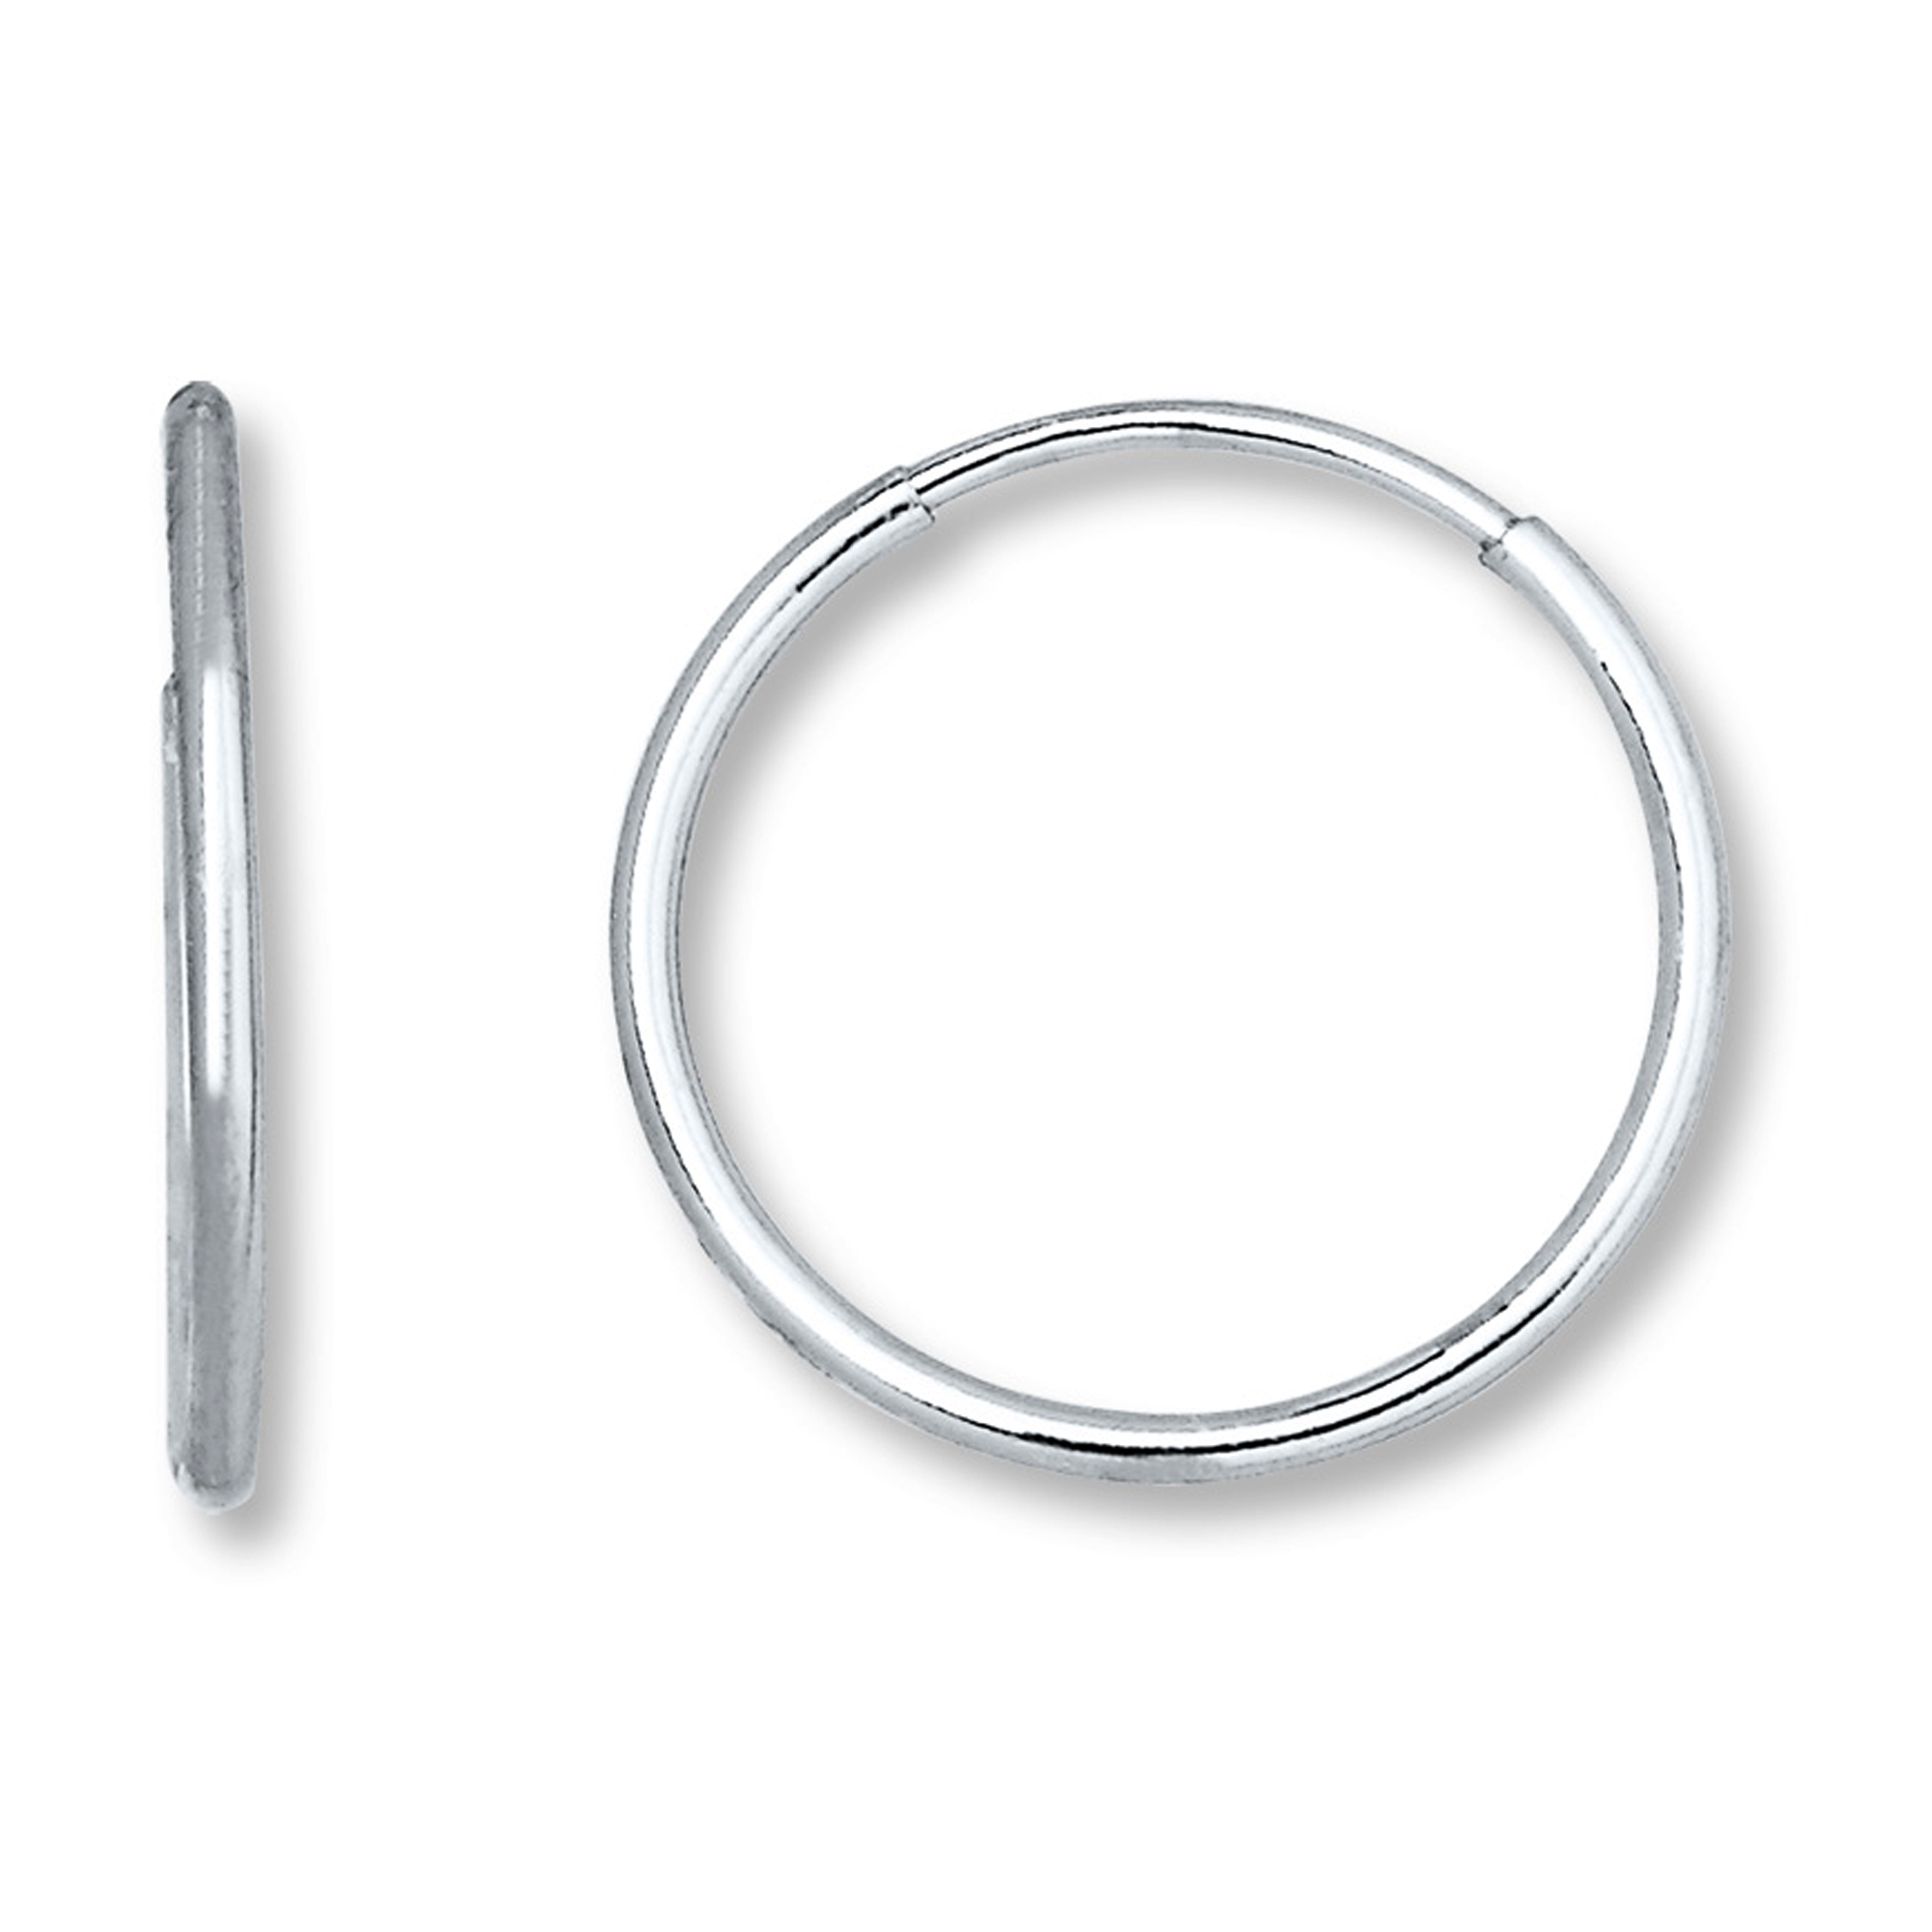 14K White Gold Endless Round Hoop Earrings, 10mm Complete your jewelry collection with a gorgeous pair of 14K endless earrings. These earrings have a secure snap post clasp making them easy to wear and remove. Earrings come in a  gift box making them ready to be gifted.